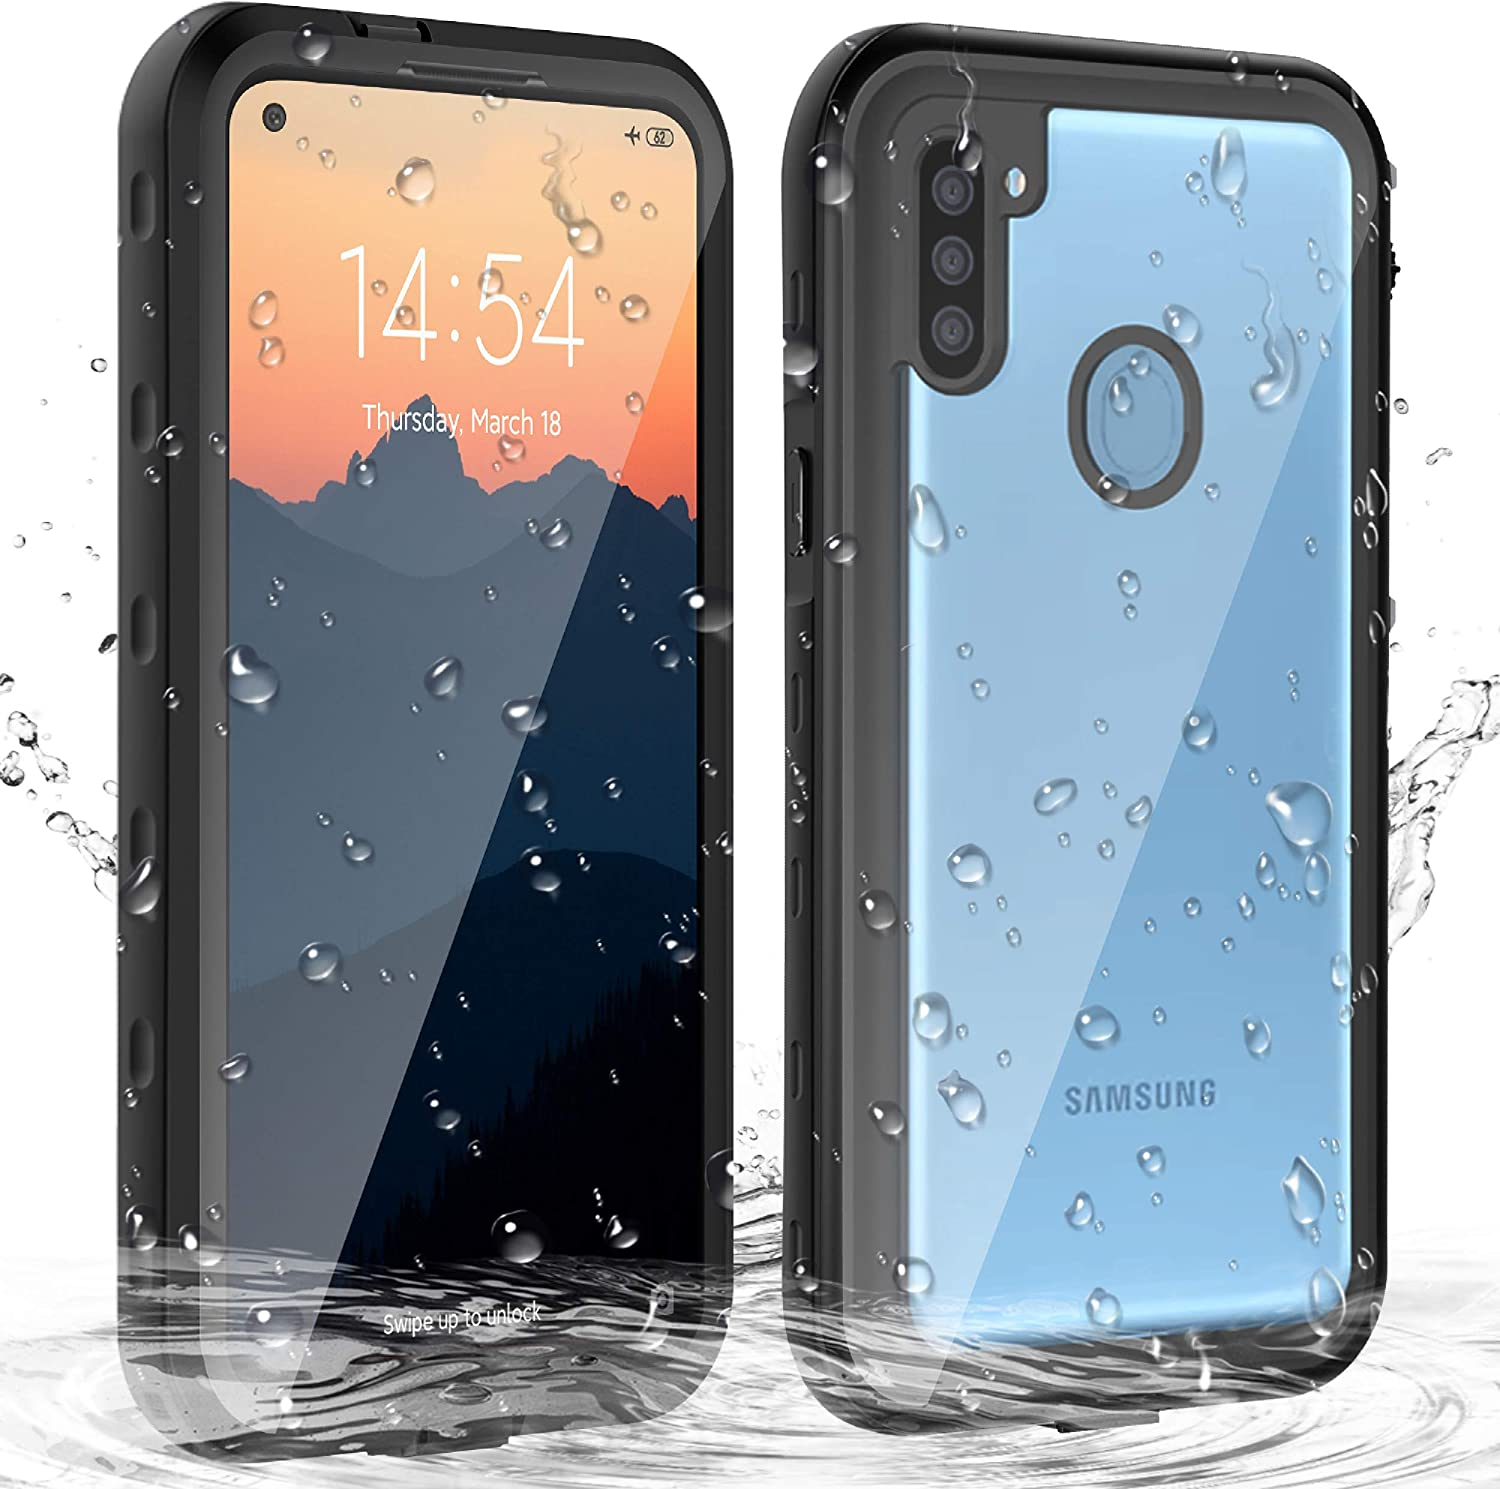 Janazan Samsung A11 Case, Full Body Protective Galaxy A11 Waterproof Case with Built-in Screen Protector, Heavy Duty Shockproof Sand Proof for Samsung Galaxy A11 (Black)